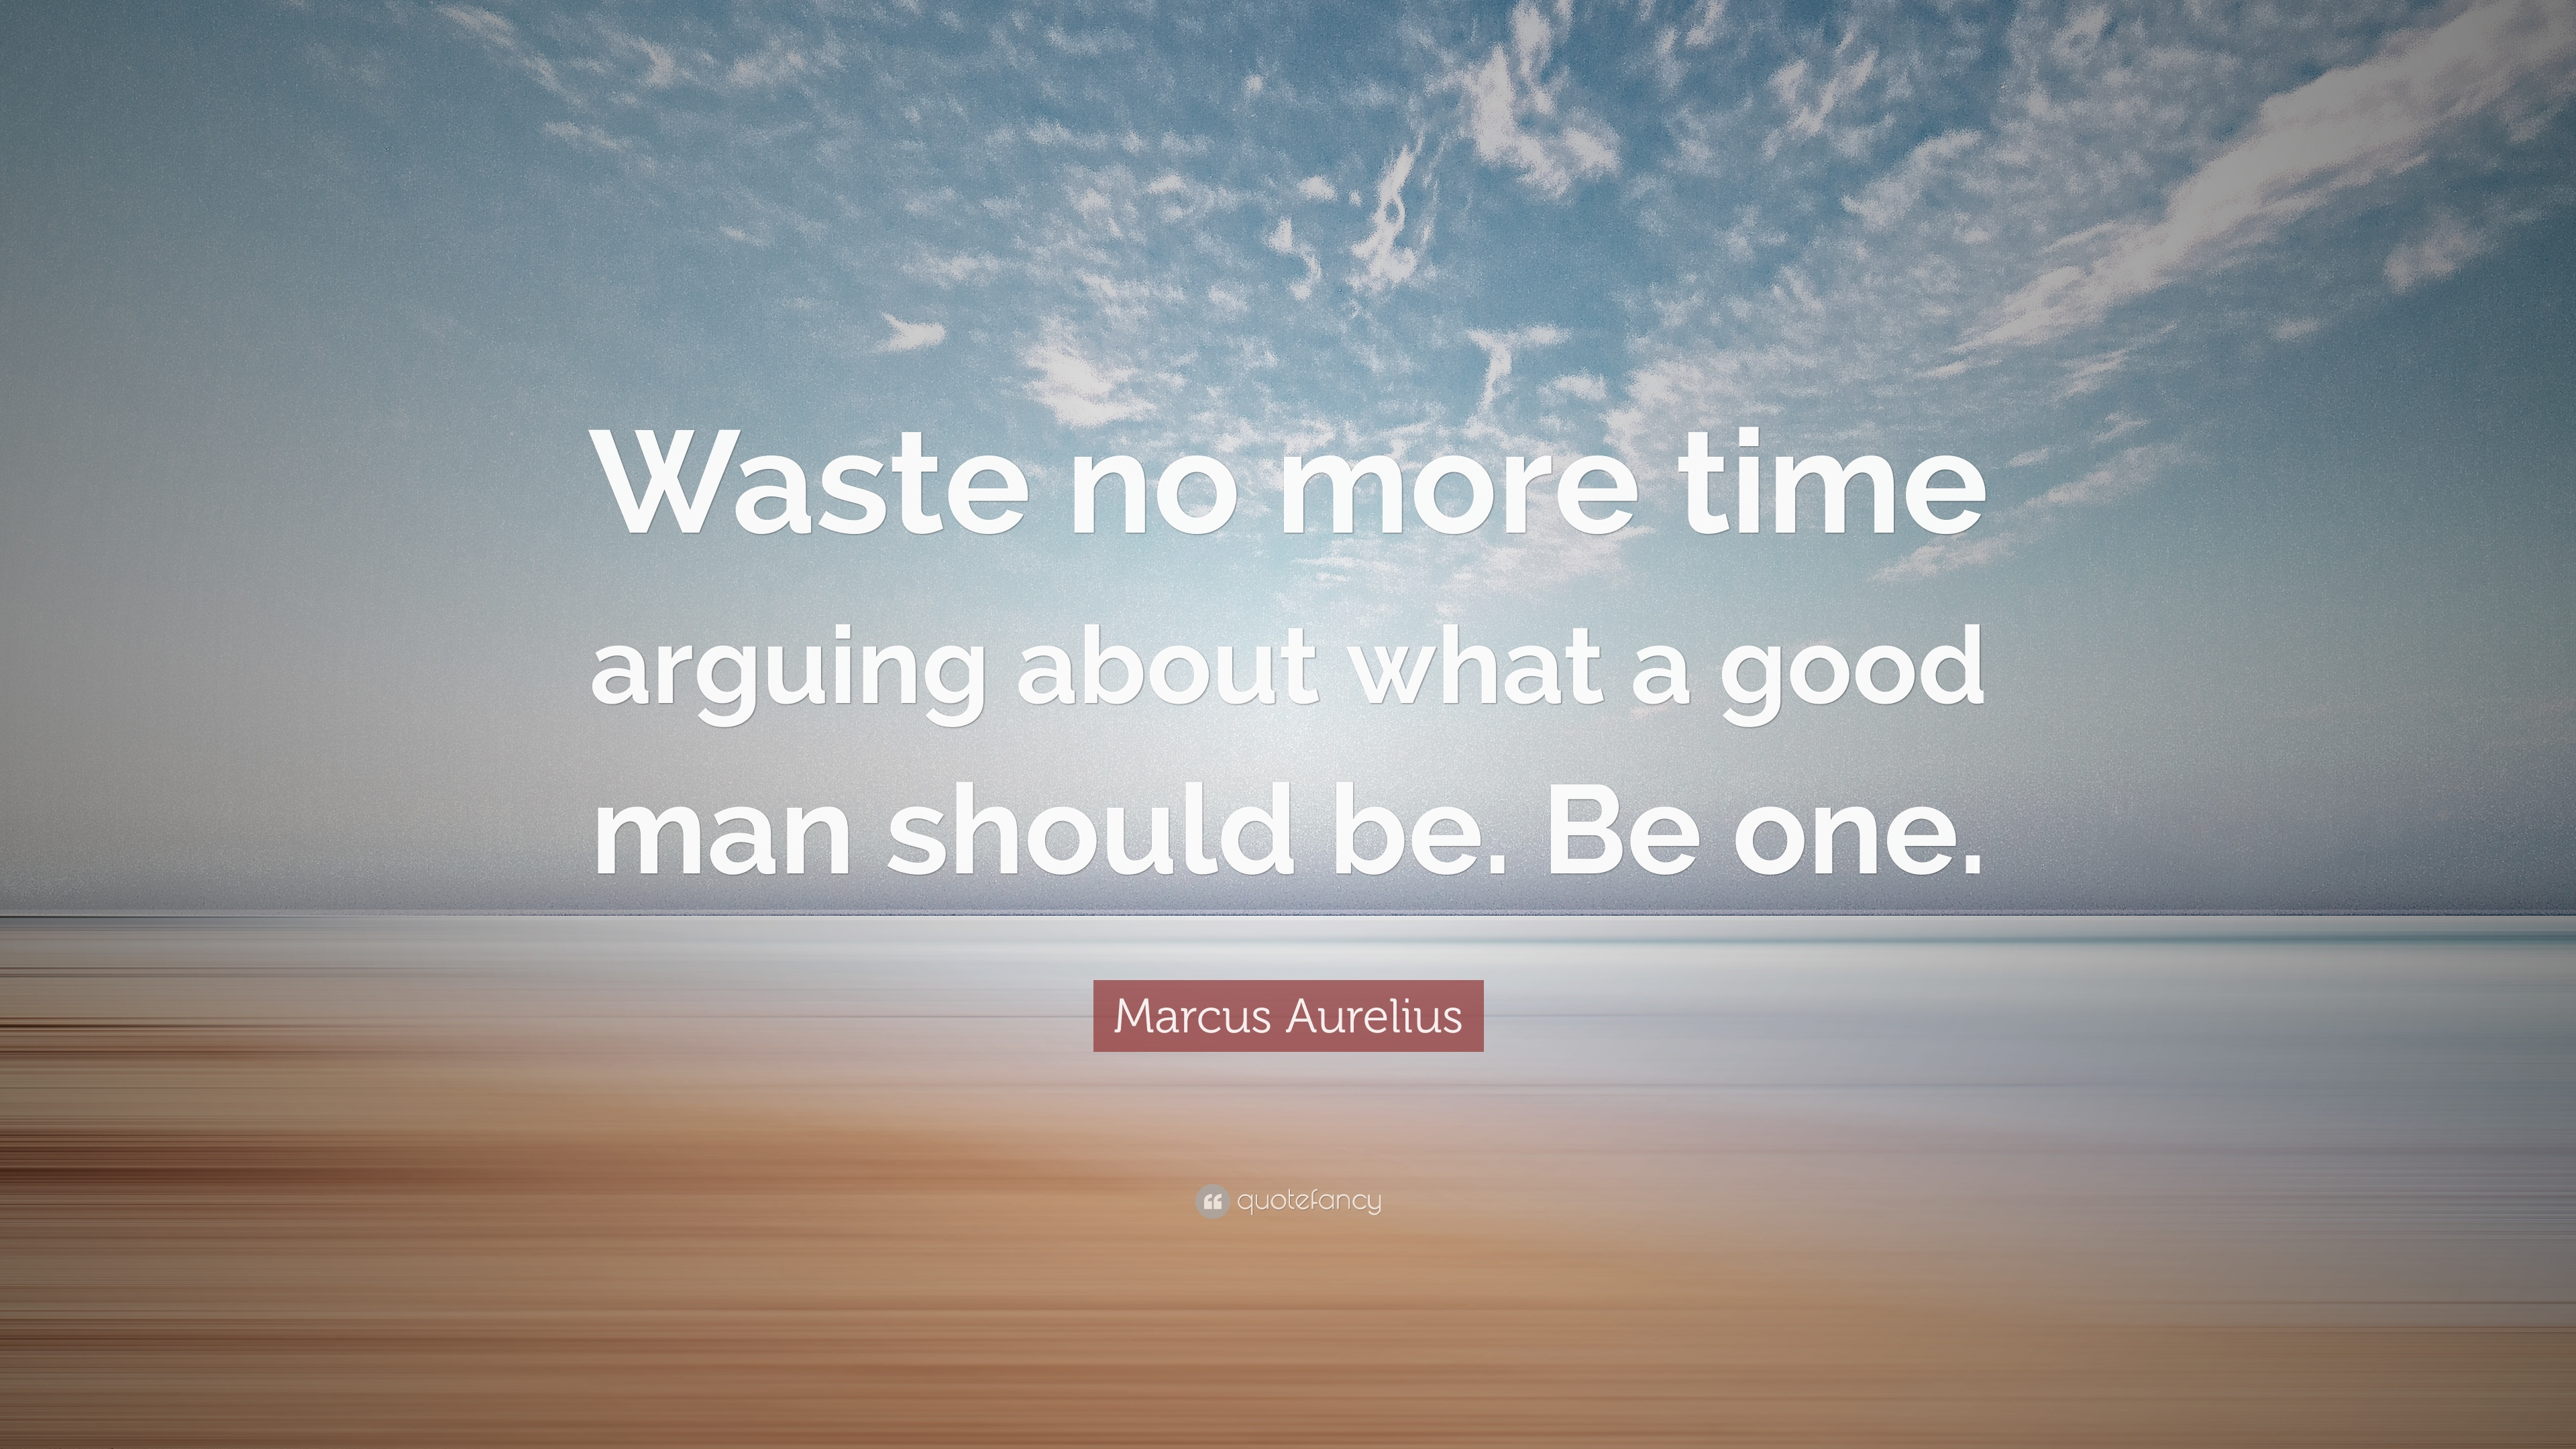 Marcus Be Arguing What About Time One Waste Good Man Aurelius Should Be More No